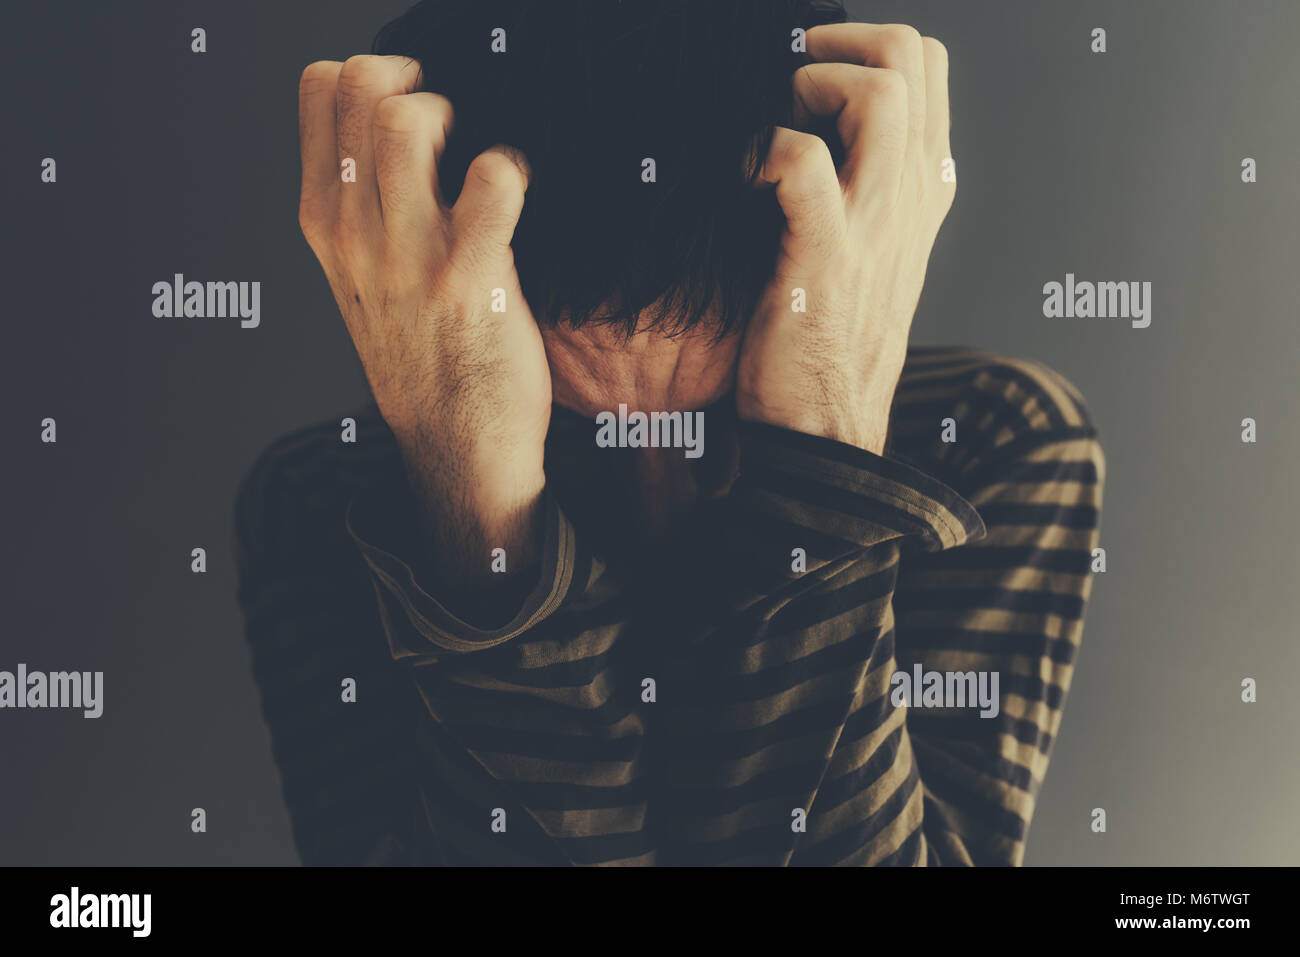 Desperate man crying alone, low key portrait with selective focus - Stock Image